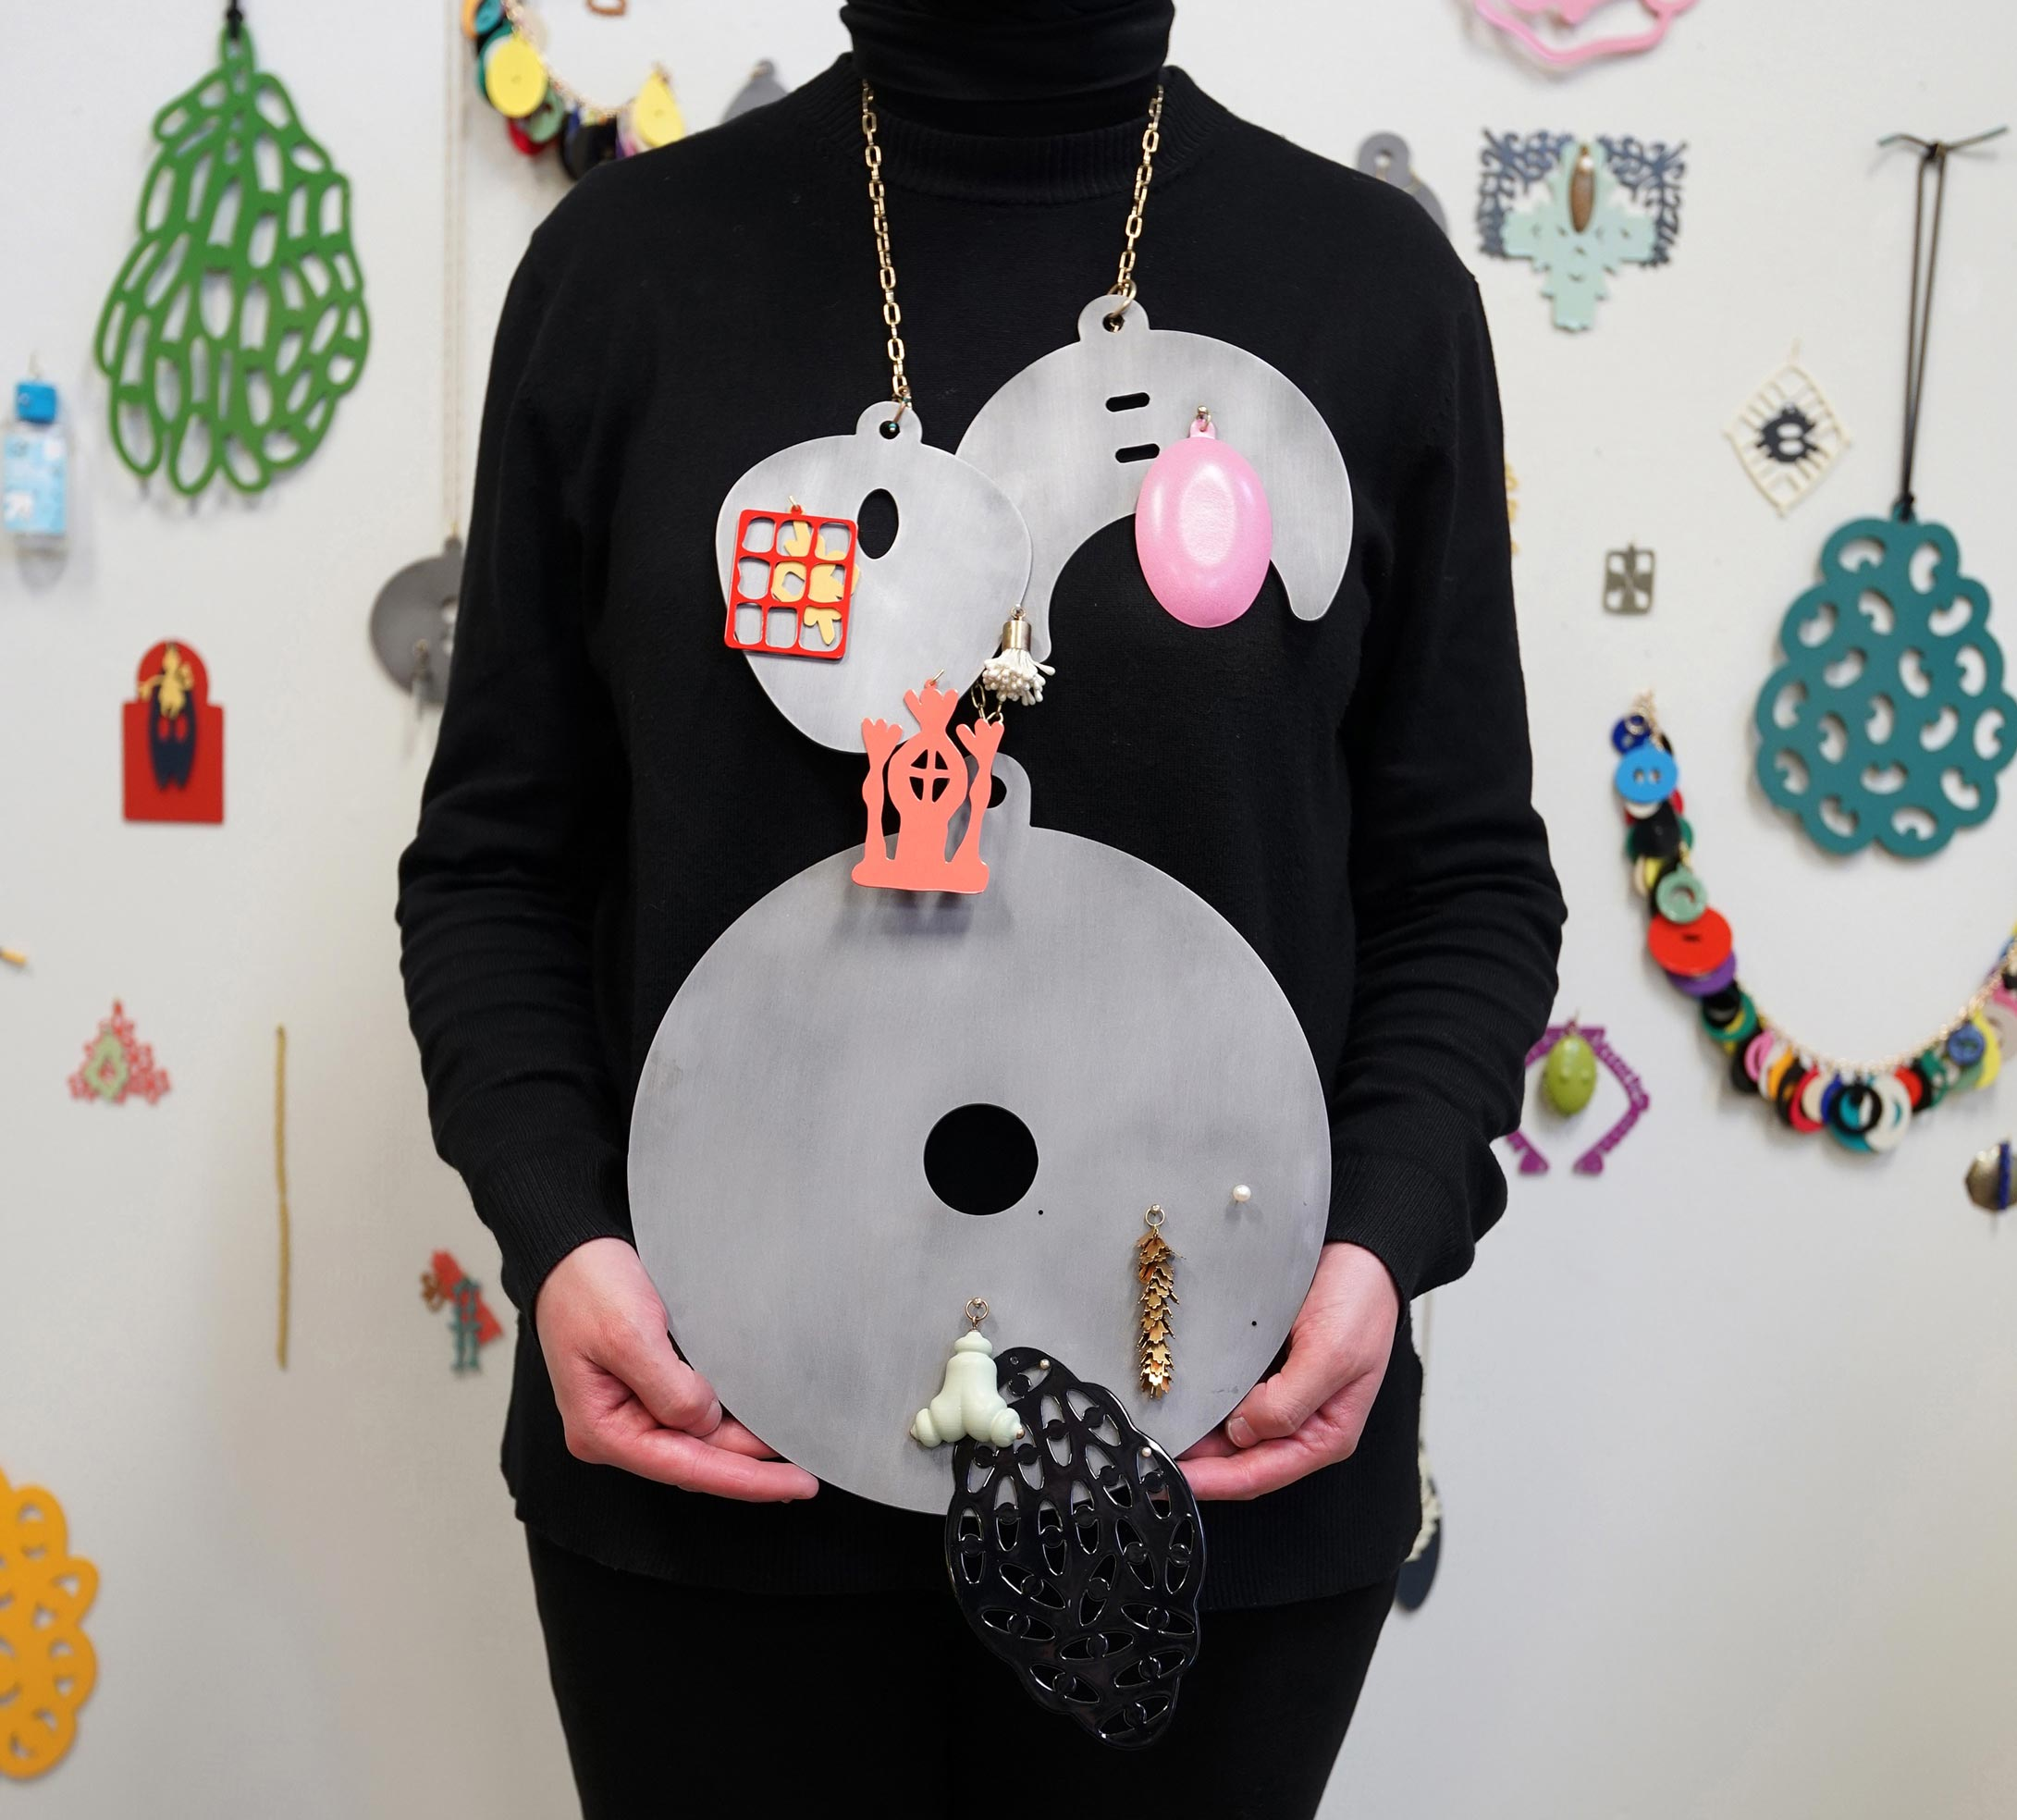 Close up on torso of person holding of a large metallic necklace made of metal discs and other shapes